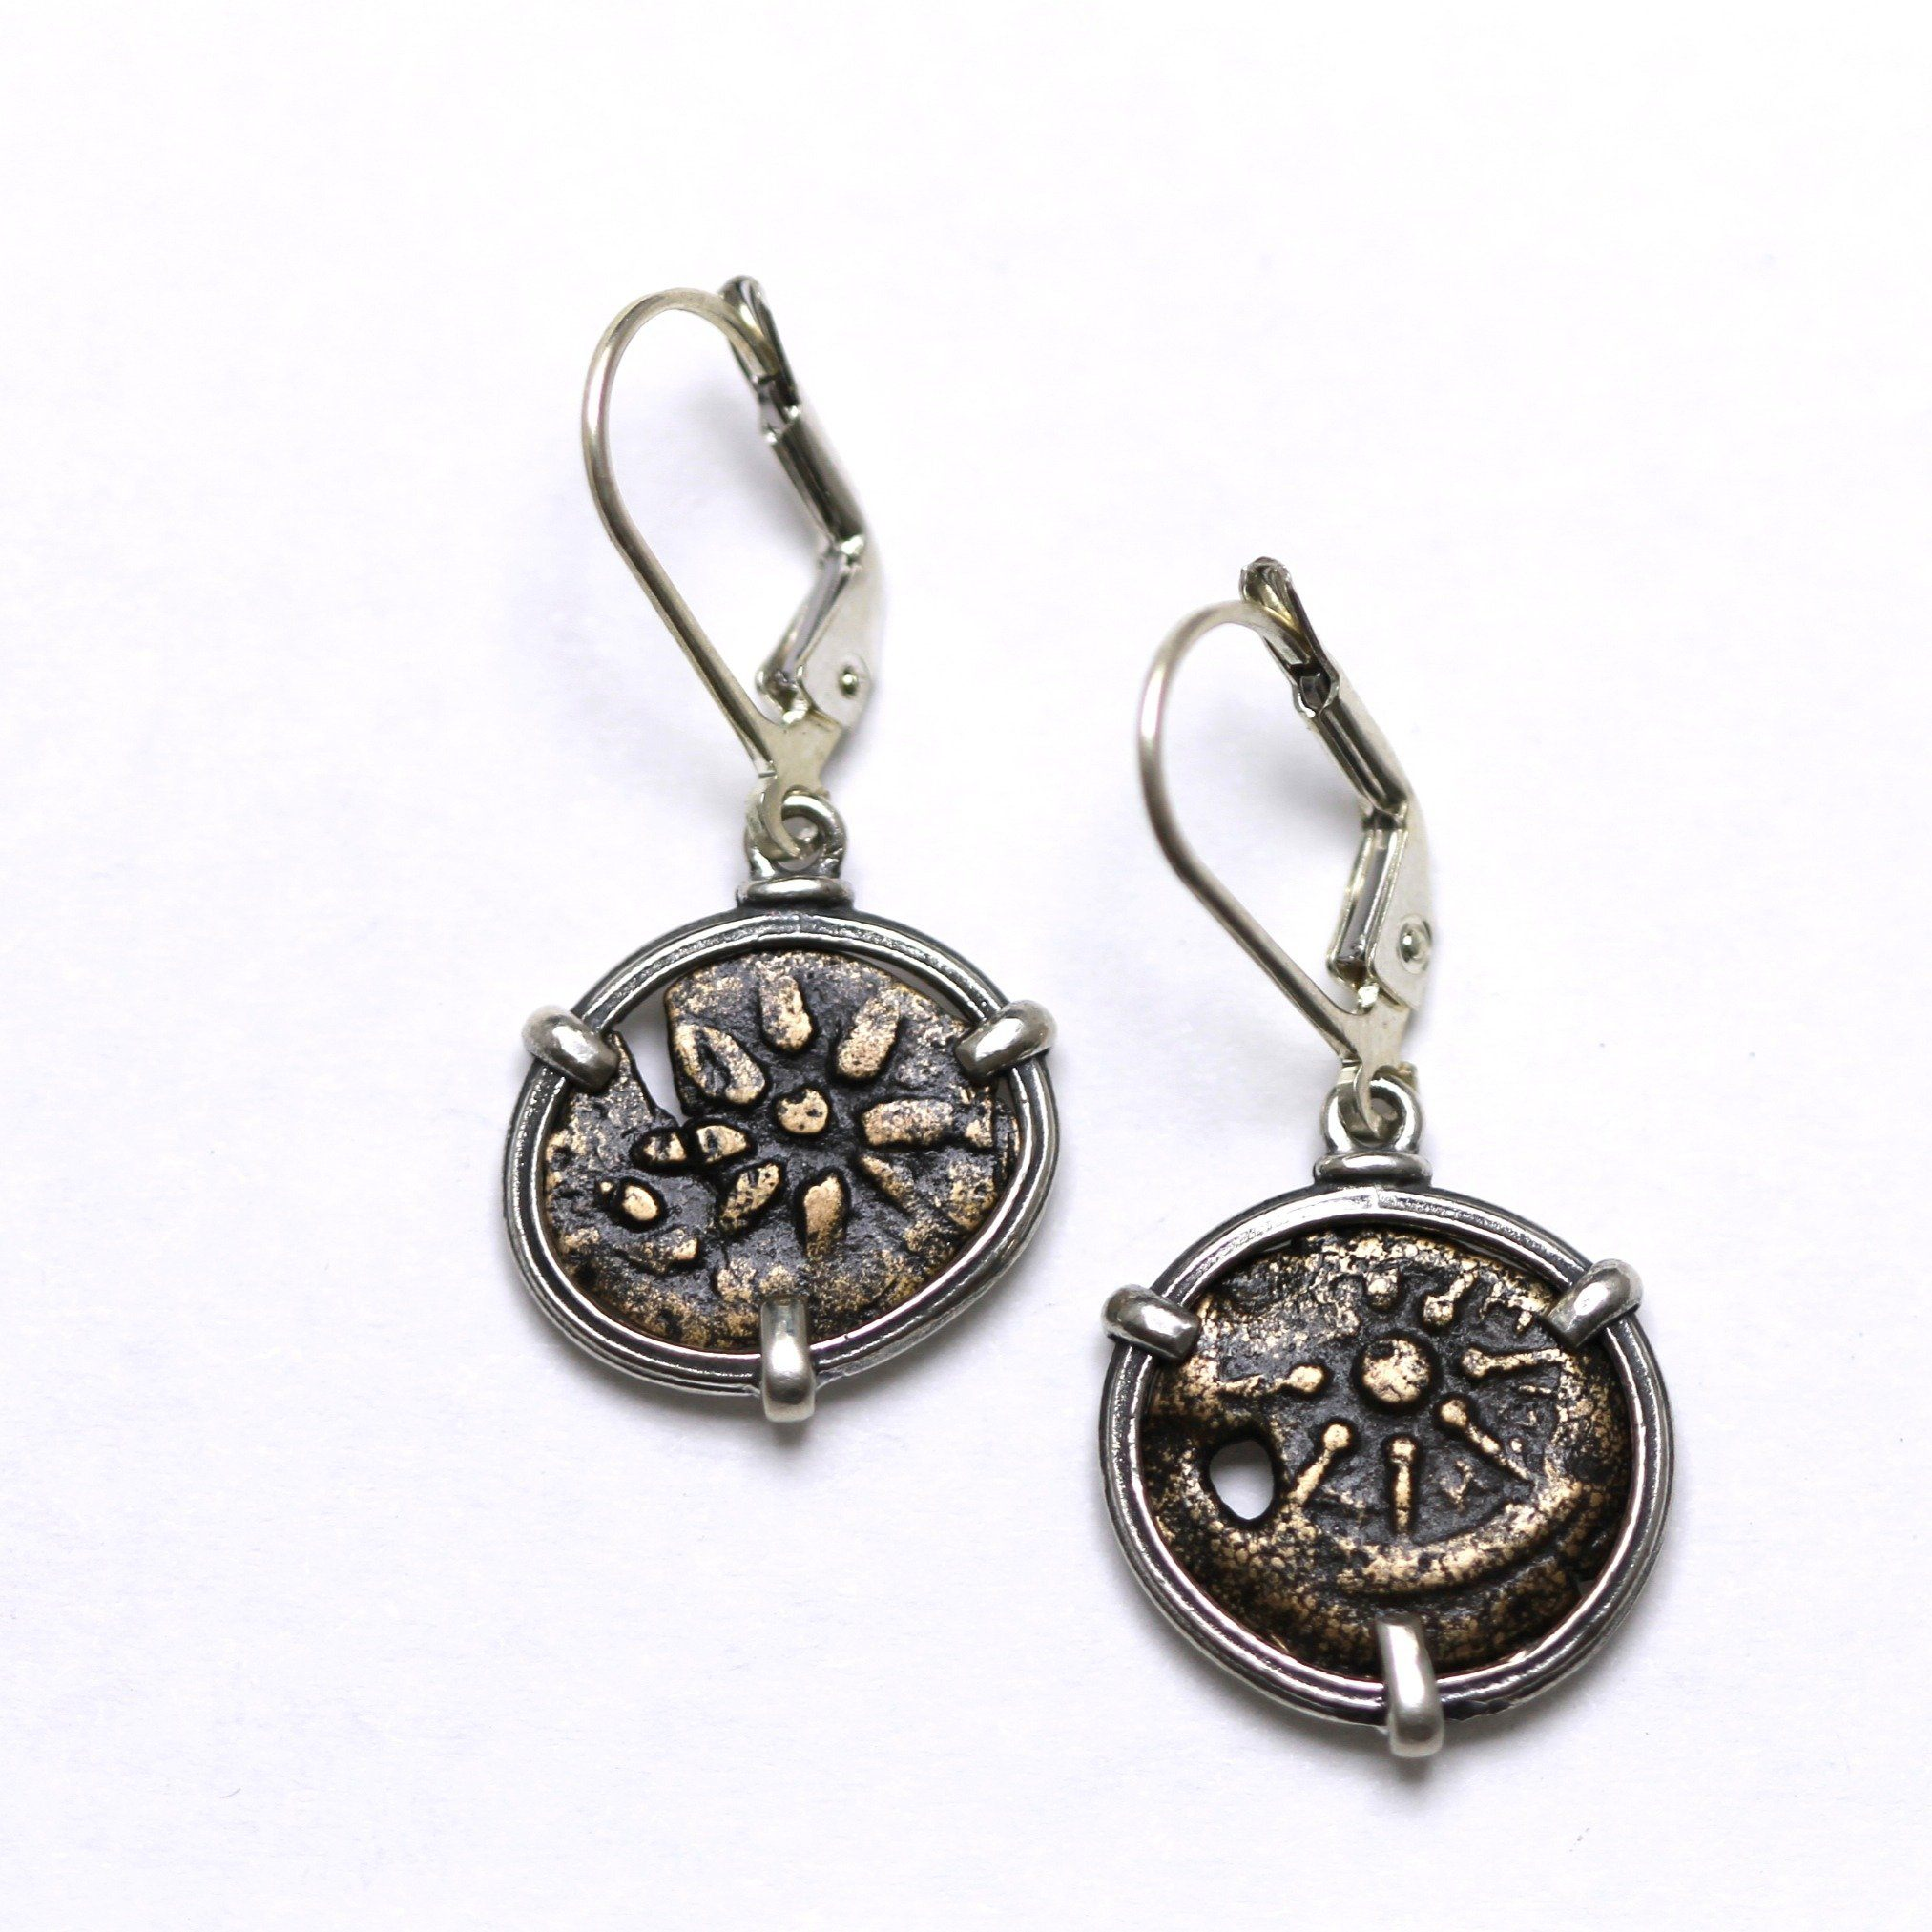 Sterling Silver Earrings, Widows Mite, Ancient Judaean Coin, 6811 - Erez Ancient Coin Jewelry, ancient coin jewelry, men jewelry, genuine ancient coins, made in the US